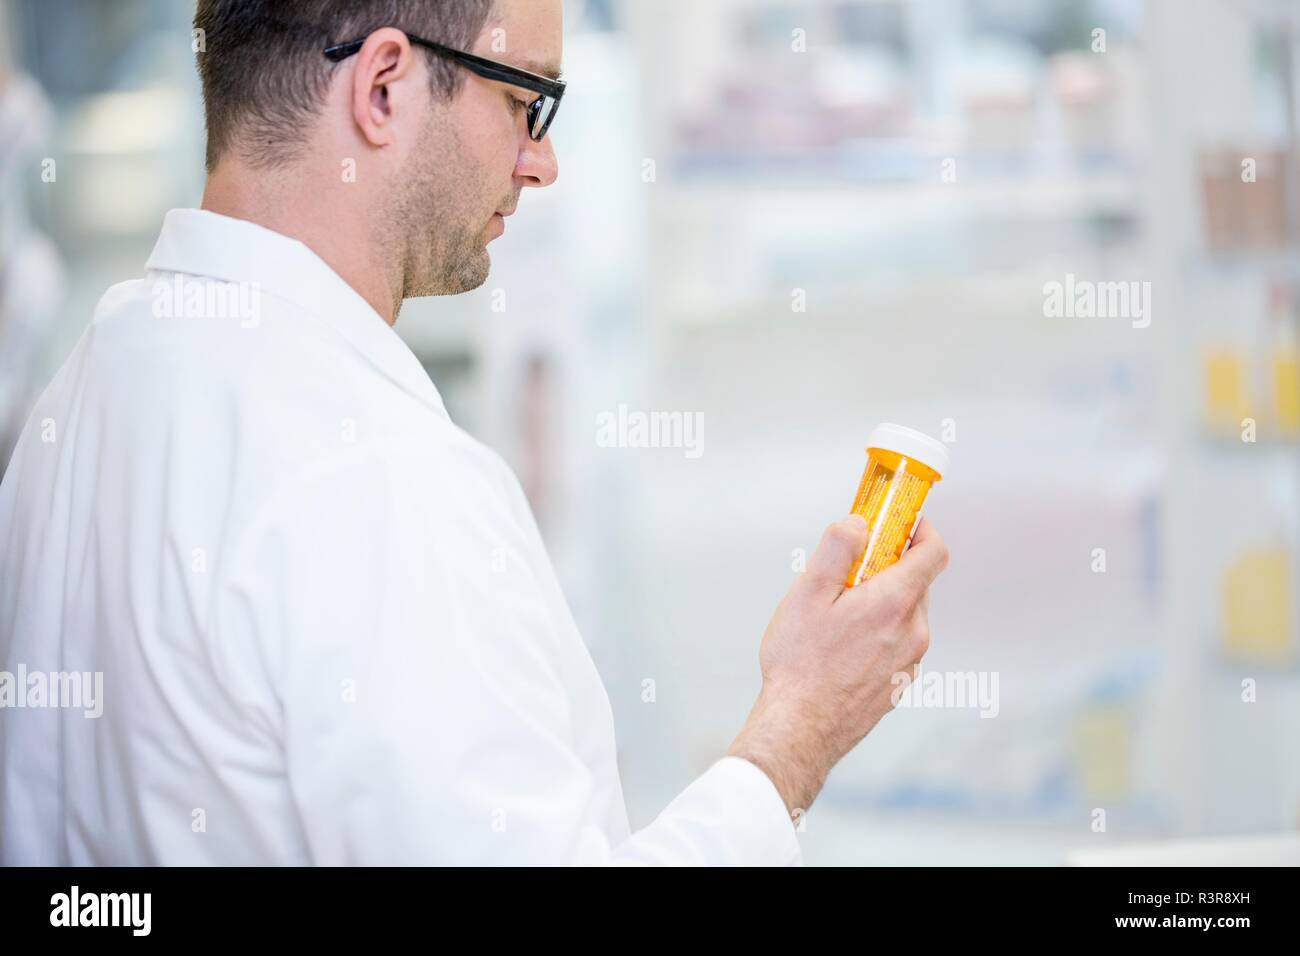 Pharmacist reading label on pill bottle in pharmacy. - Stock Image